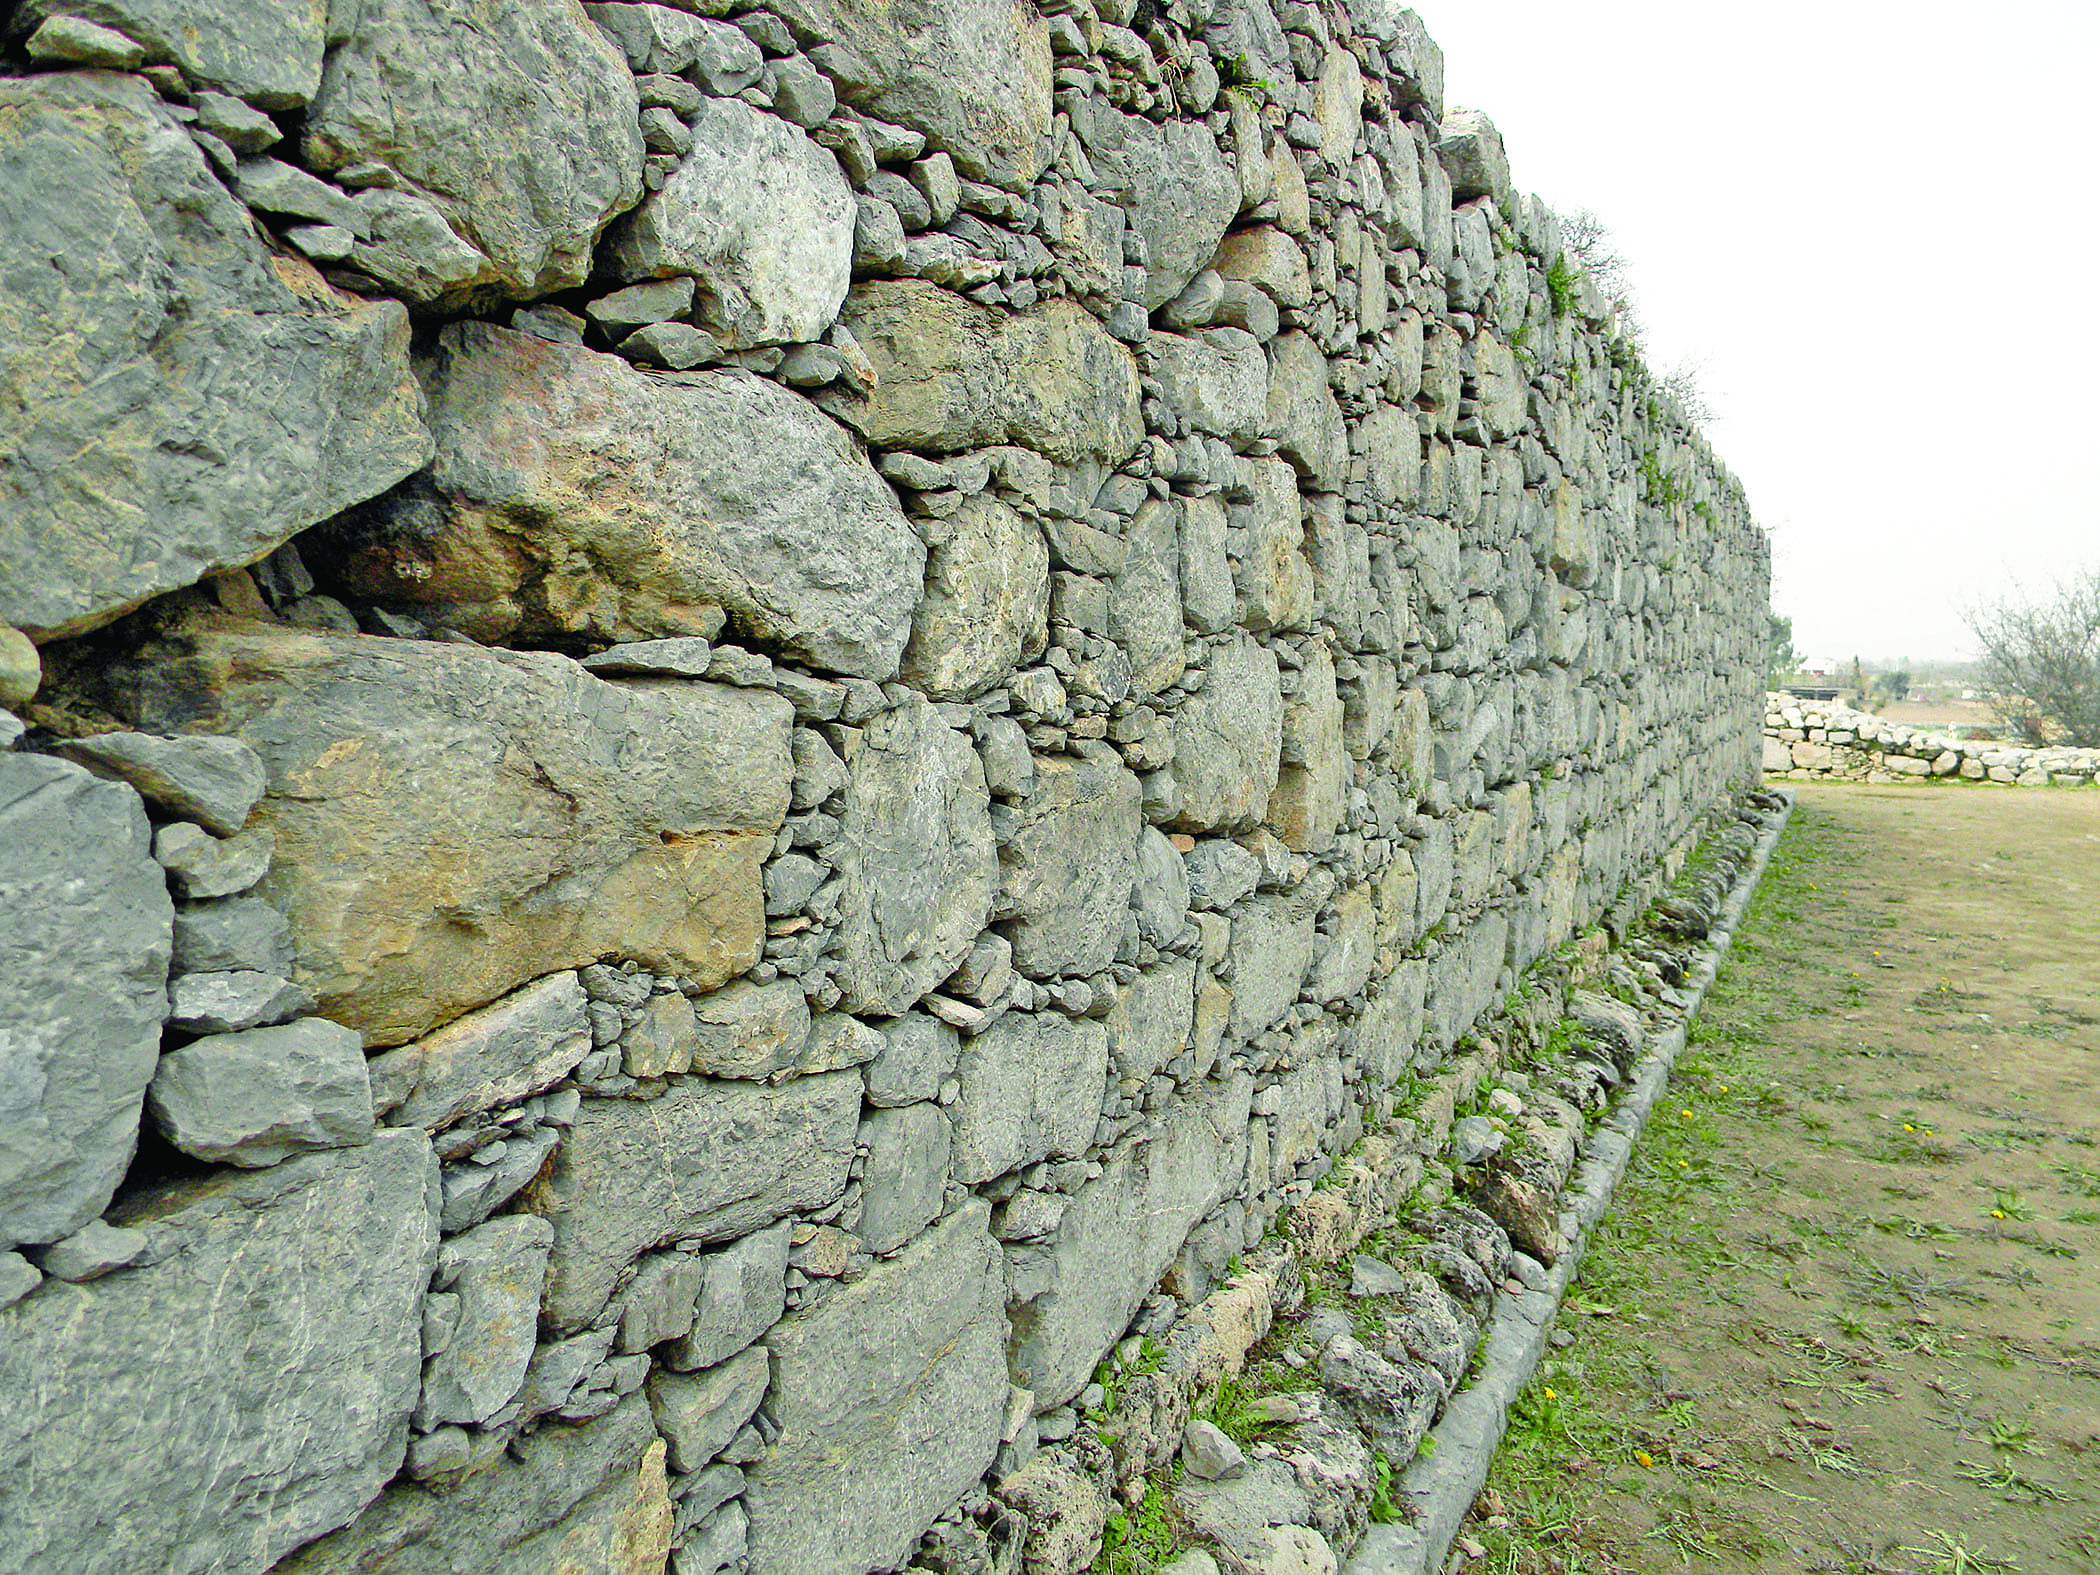 The outer wall of Jandial temple. Having been built in 1st century BC, the wall still stands tall and strong.